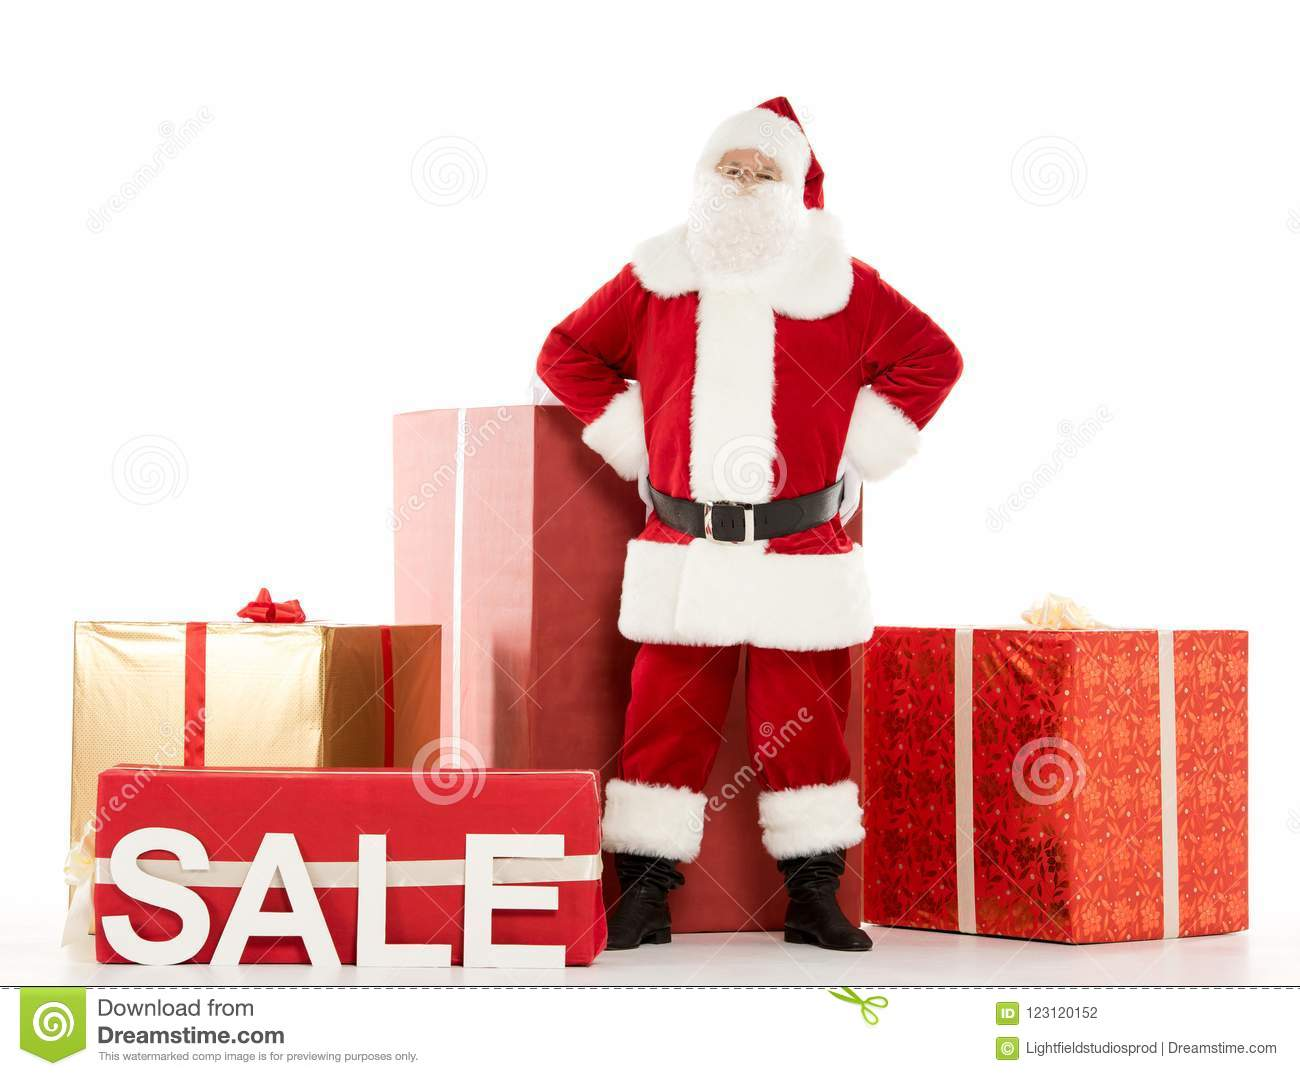 Santa Claus Standing With Sale Sign Stock Photo - Image of nicholas ...